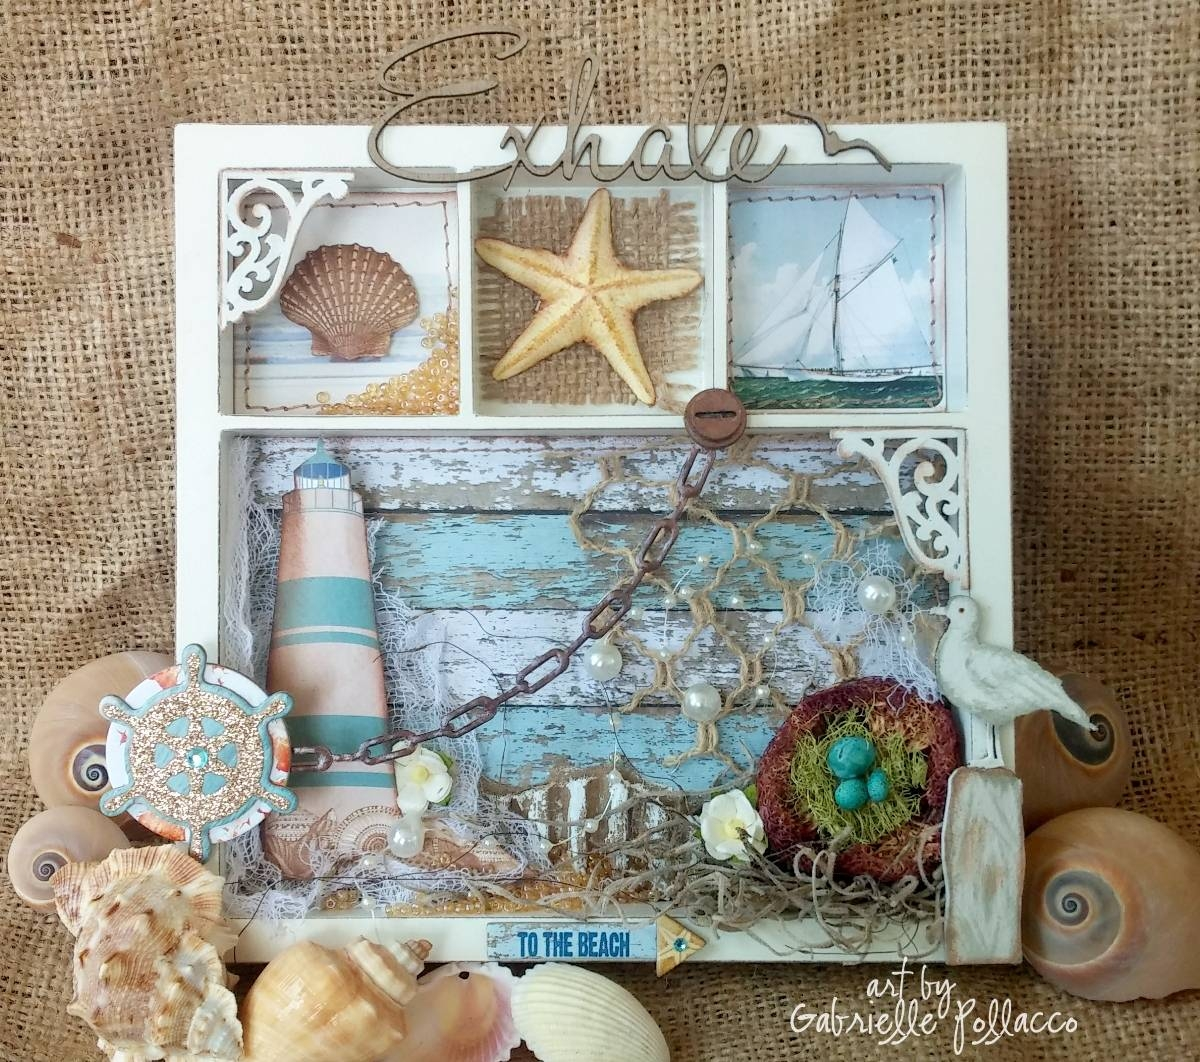 Such A Pretty Mess: Nautical/beach Themed Wall Art {bobunny Within Newest Beach Theme Wall Art (View 1 of 20)